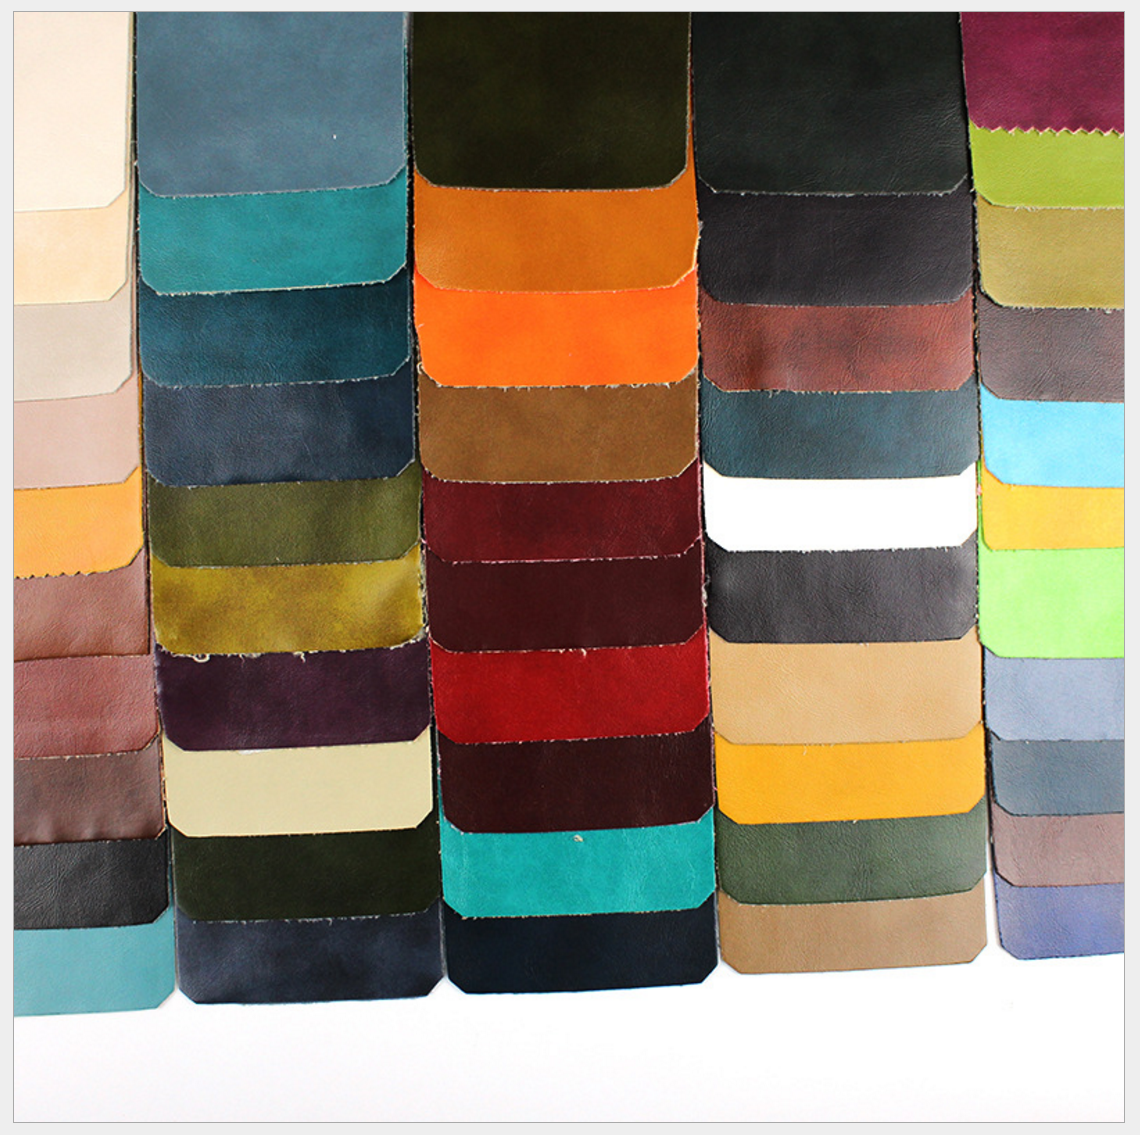 Wholesale High Quality Imitation PVC Microfiber Leatherette For Sofa Cover Headboard Bedroom Furniture In Stock